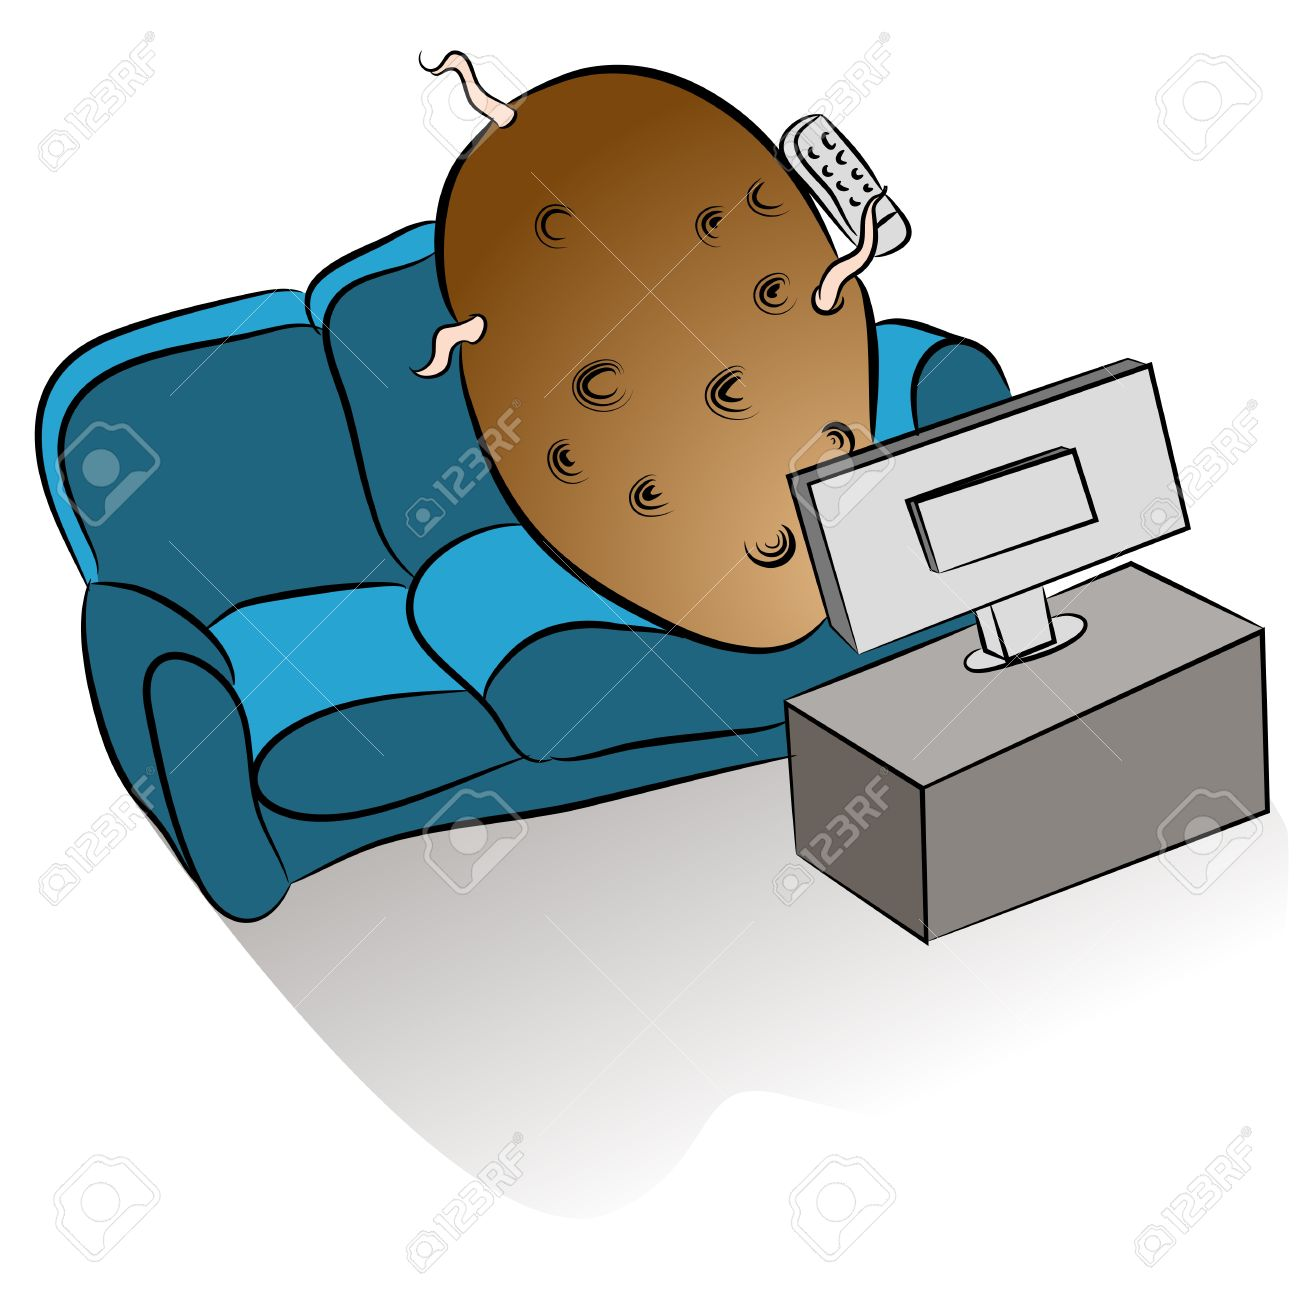 an image of a couch potato watching tv royalty free cliparts rh 123rf com  couch potato clipart free